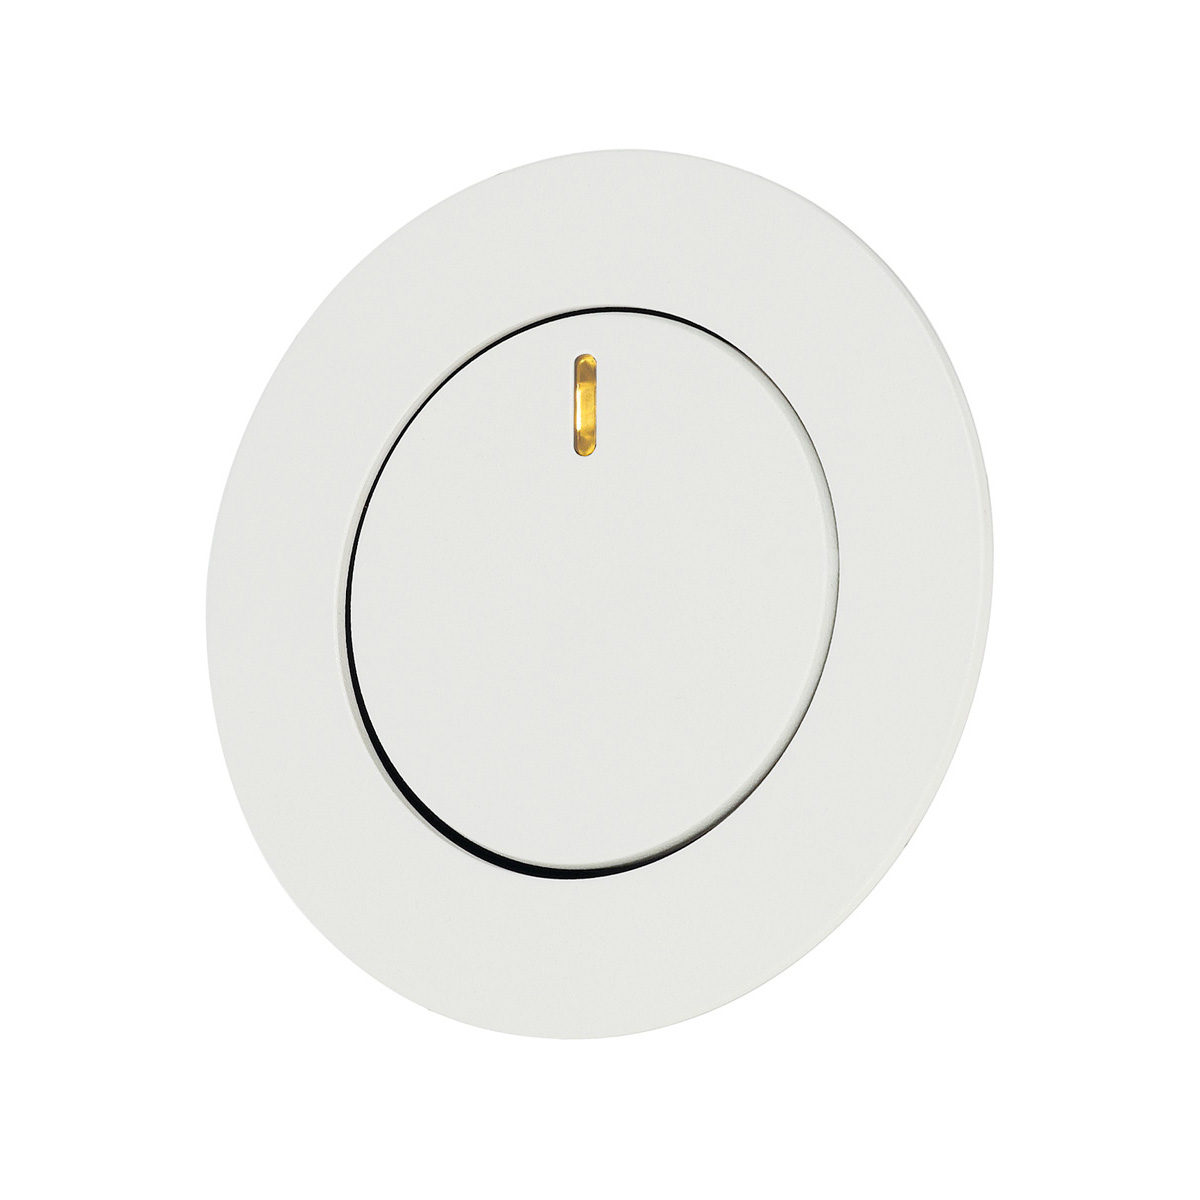 Recessed Wall Reading Lights : Intalite GILALED recessed reading light, white, 3W LED, 3000K, blue LED eBay